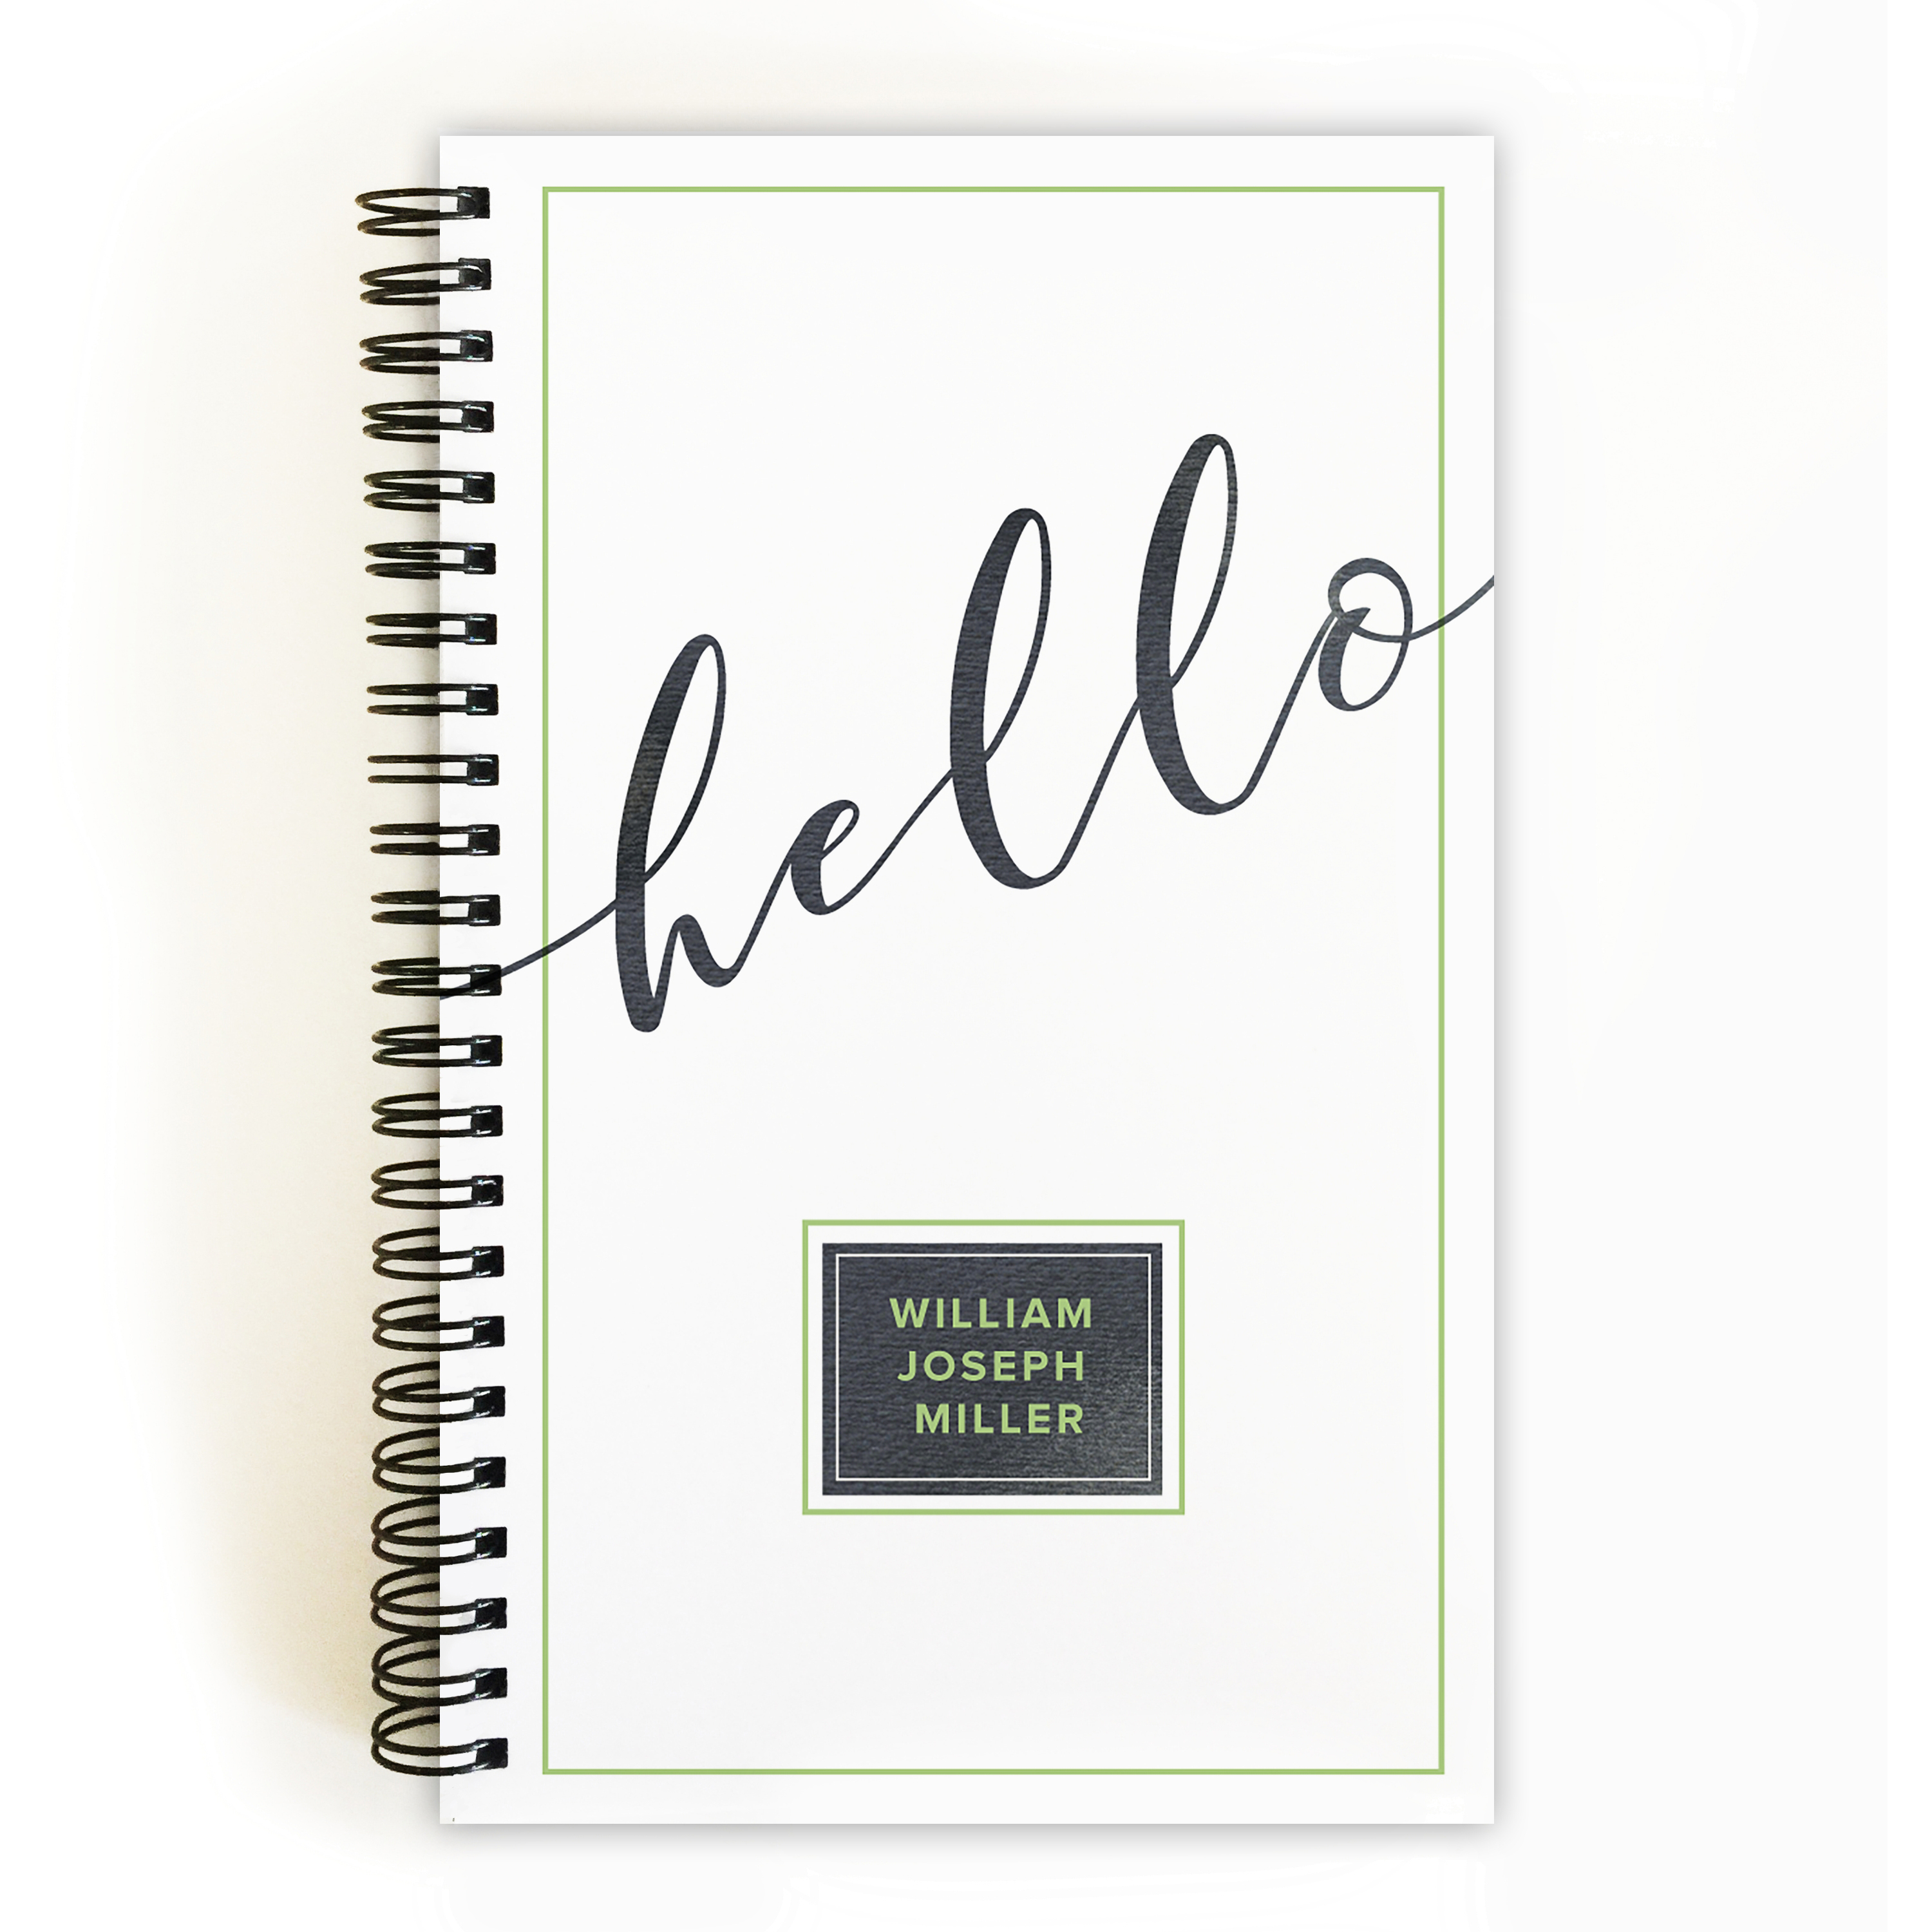 Graceful Script - Personalized 5 x 8 Notebook